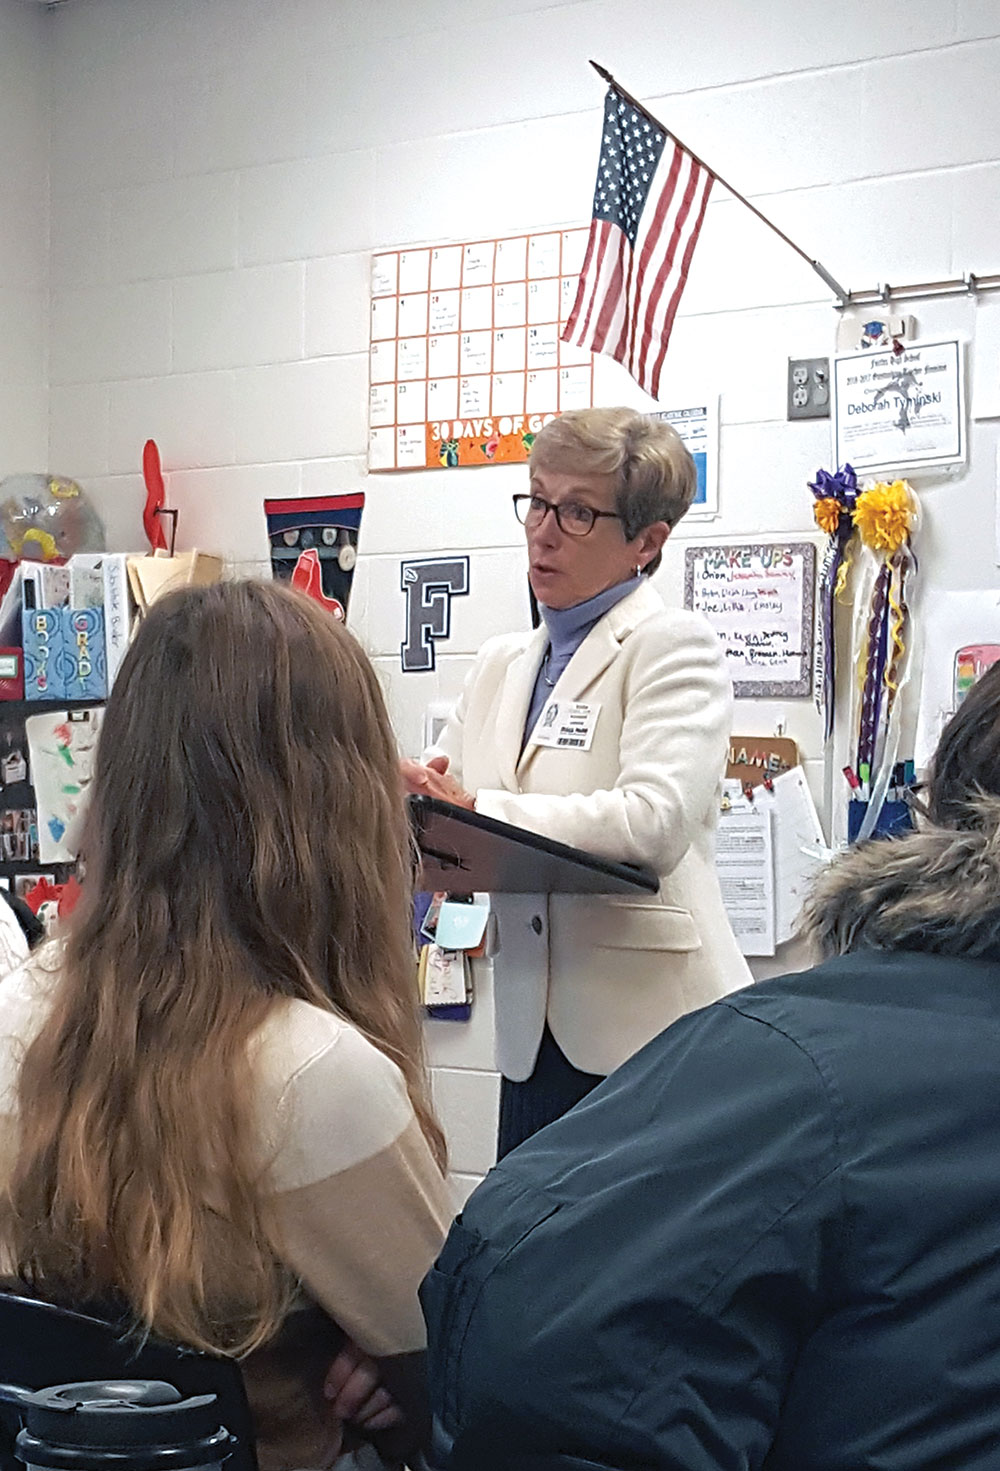 Ambassador Canavan speaks with students at Leavenworth High School Dec. 3, 2019, during her first visit to Fort Leavenworth as the CGSC Foundation's DACOR Distinguished Visiting Professor of Diplomacy. (Photo by Paige Cox)